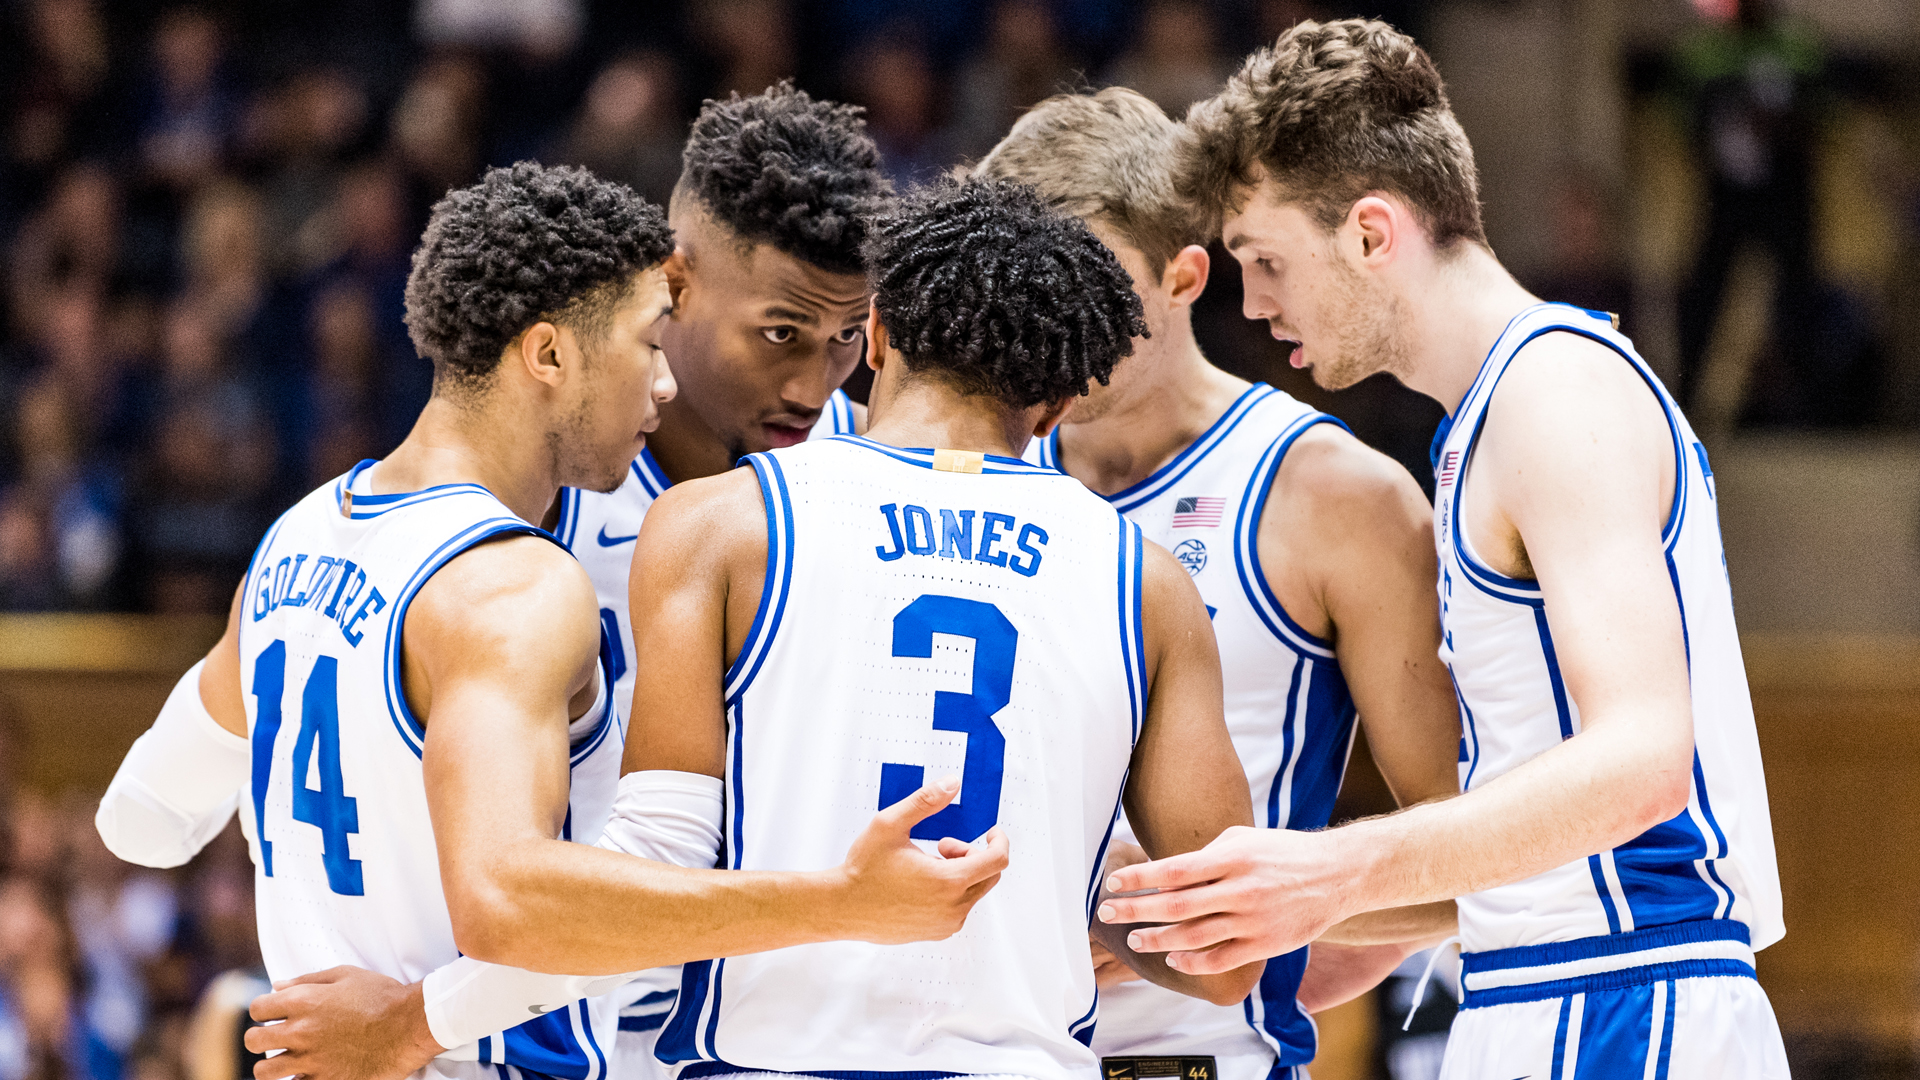 Duke At Michigan State Tuesday For Big Ten Acc Challenge